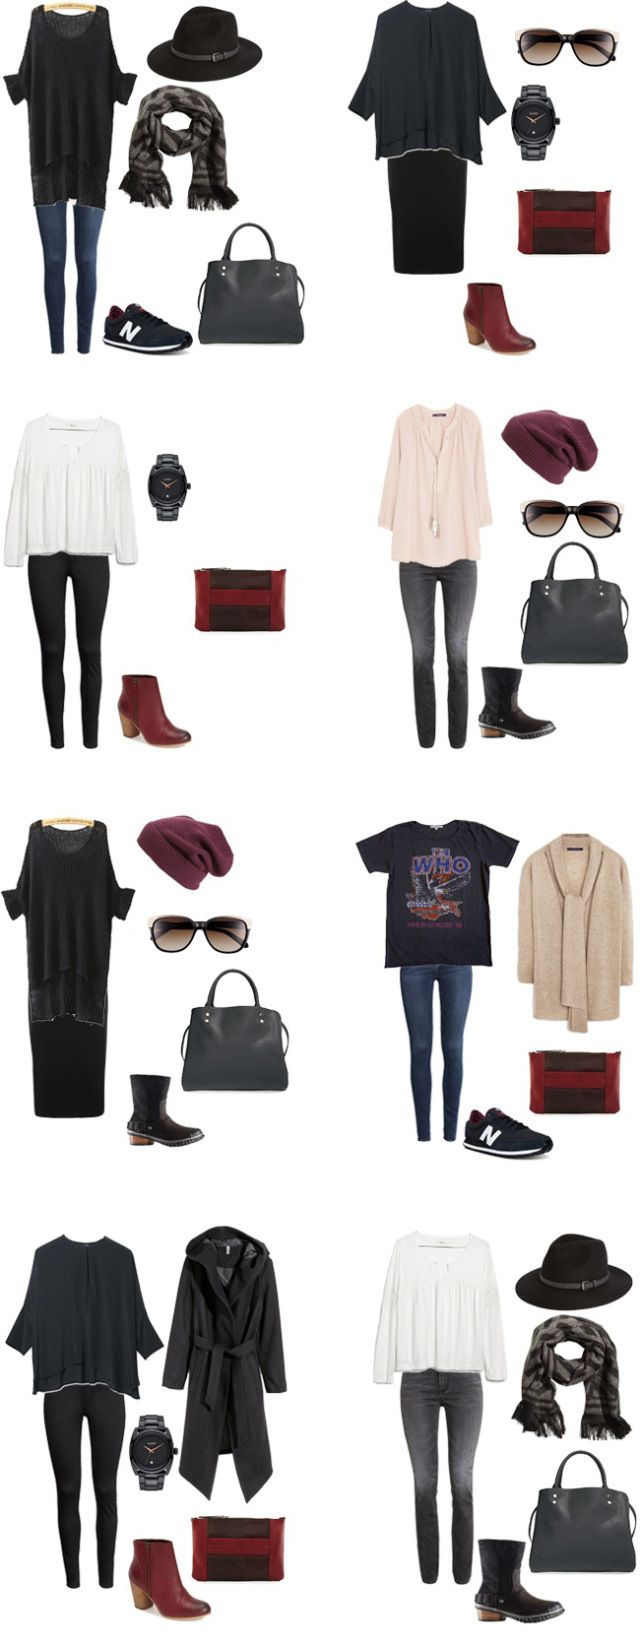 What to Wear in New York City Winter edition Outfits 11-18 #packinglight #travellight #traveltips